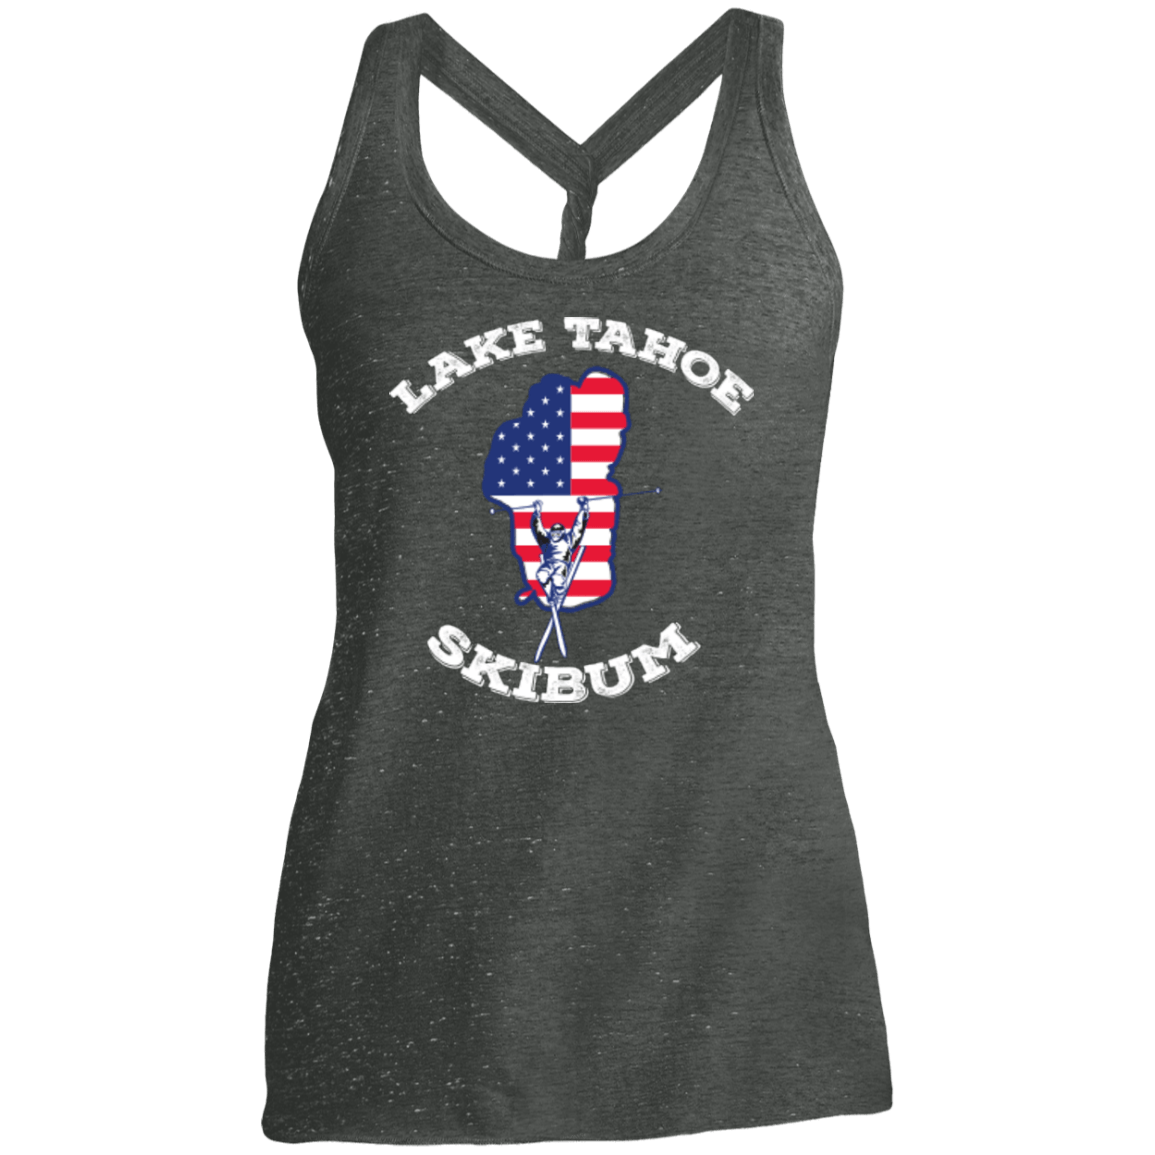 Lake Tahoe Ski Bum Tank Tops - Powderaddicts